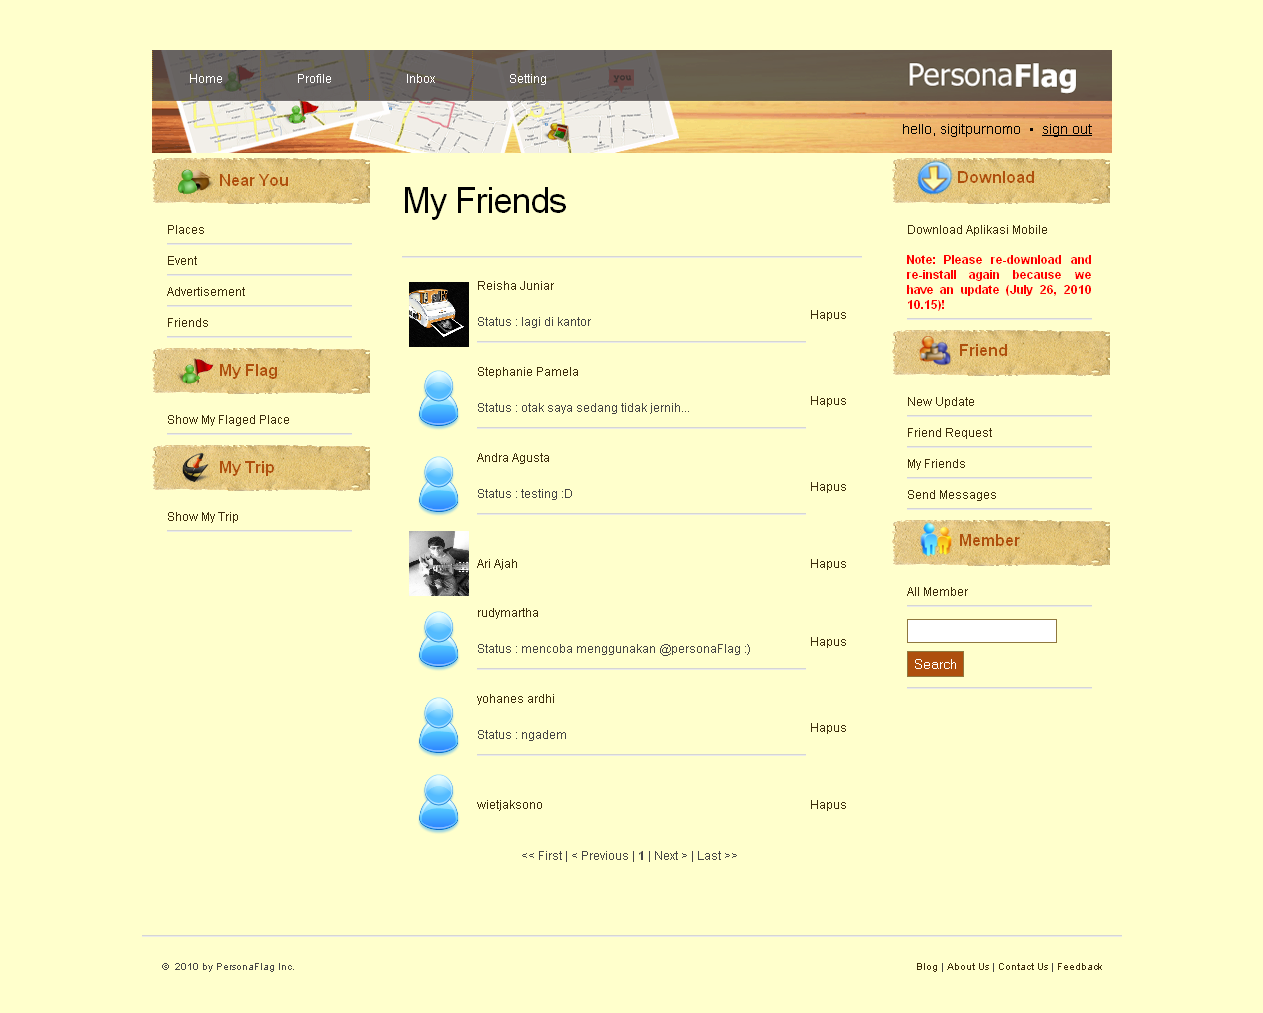 Web App - Show Friend List